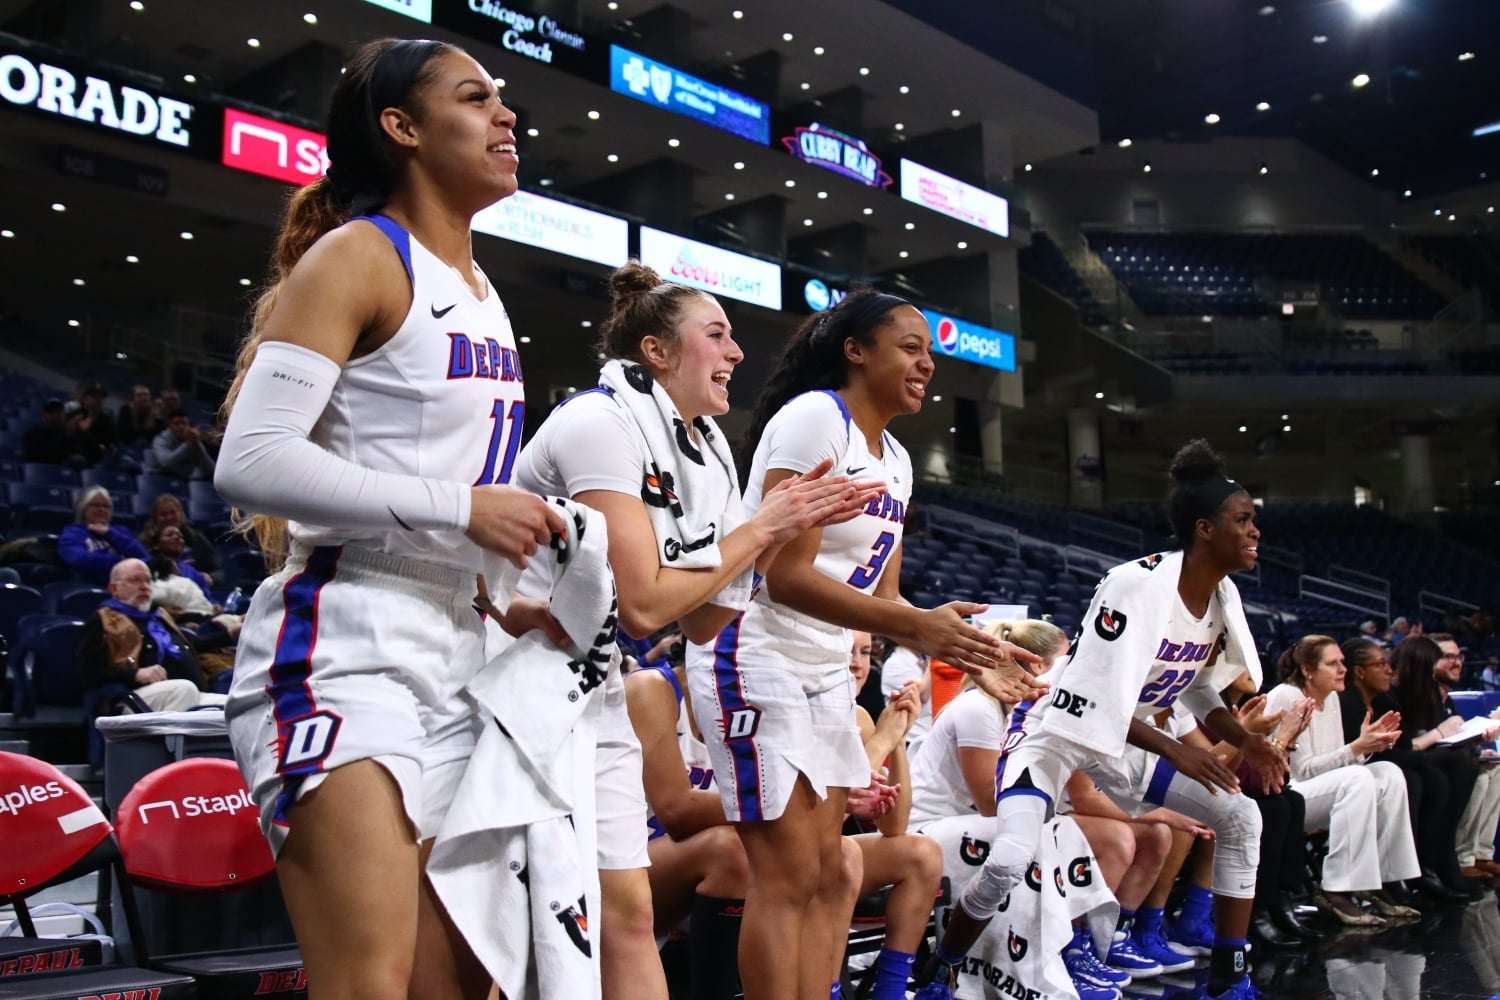 The DePaul bench celebrates during the second half against Alabama State.